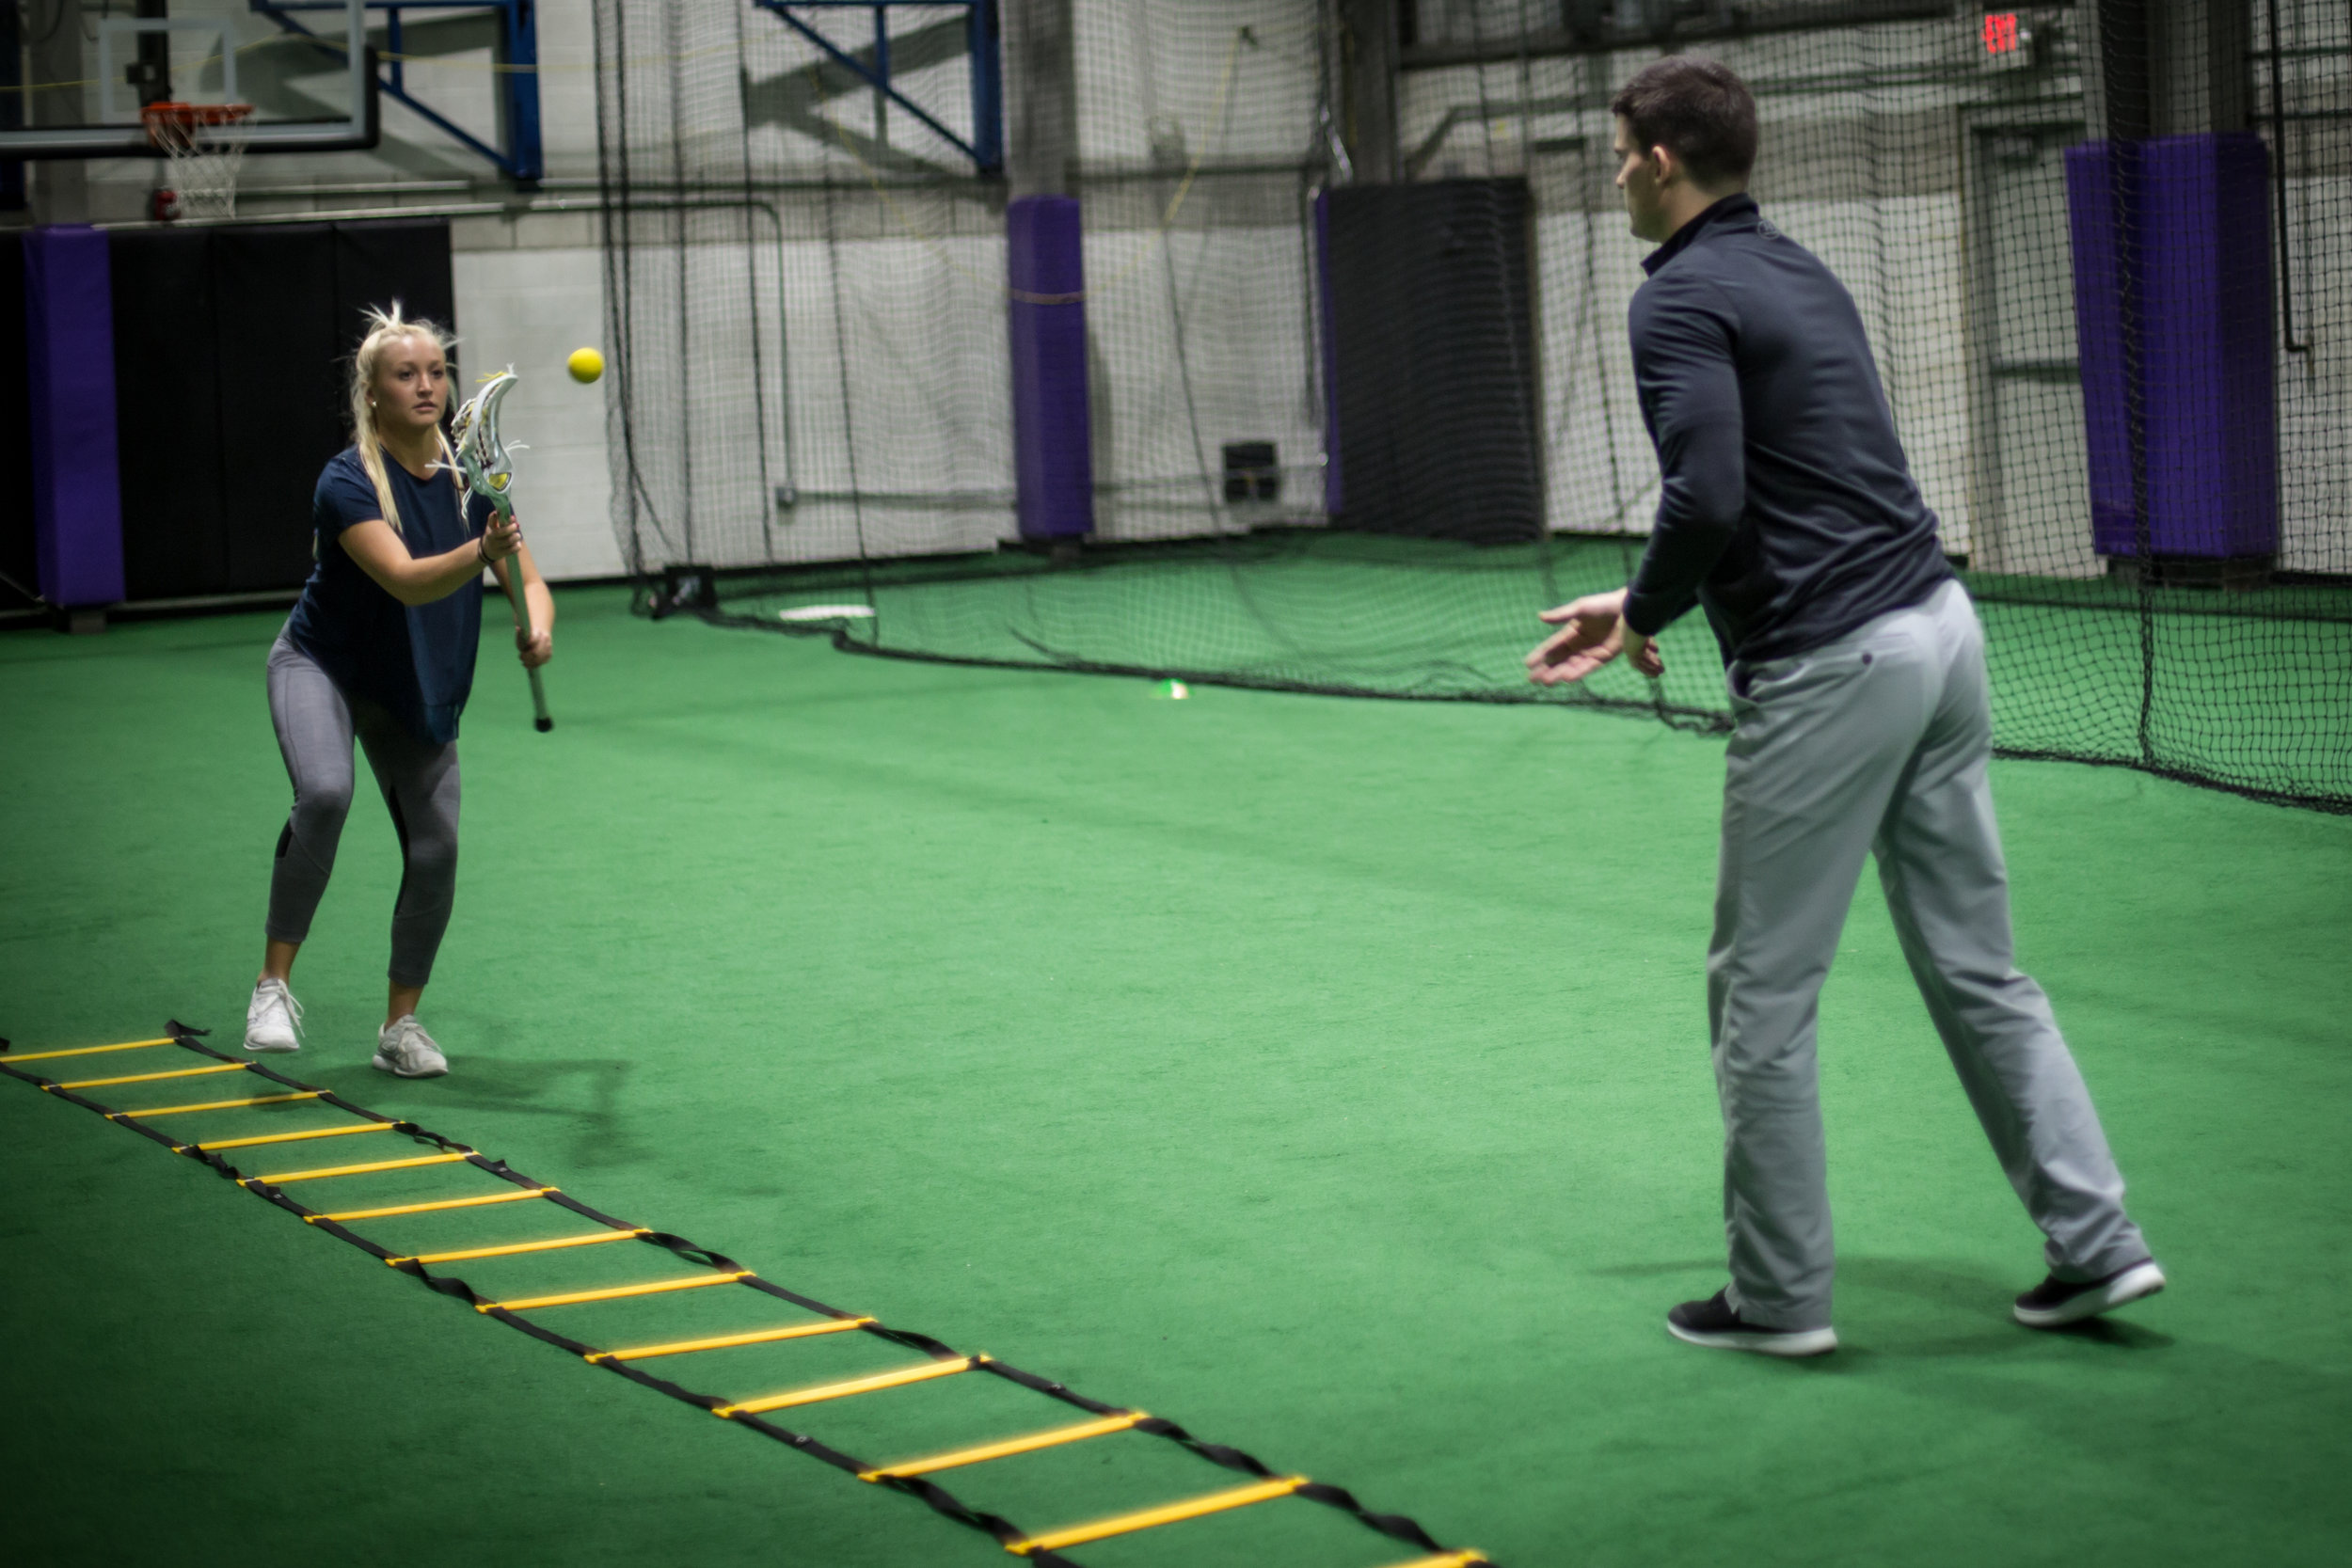 Maryland physical therapy, best sports physical therapy, Baltimore sports physical therapy, sports injuries, sports rehab, Elkridge physical therapy, Columbia physical therapy, Howard county sports, ACL rehab, ACL prevention, lacrosse injuries